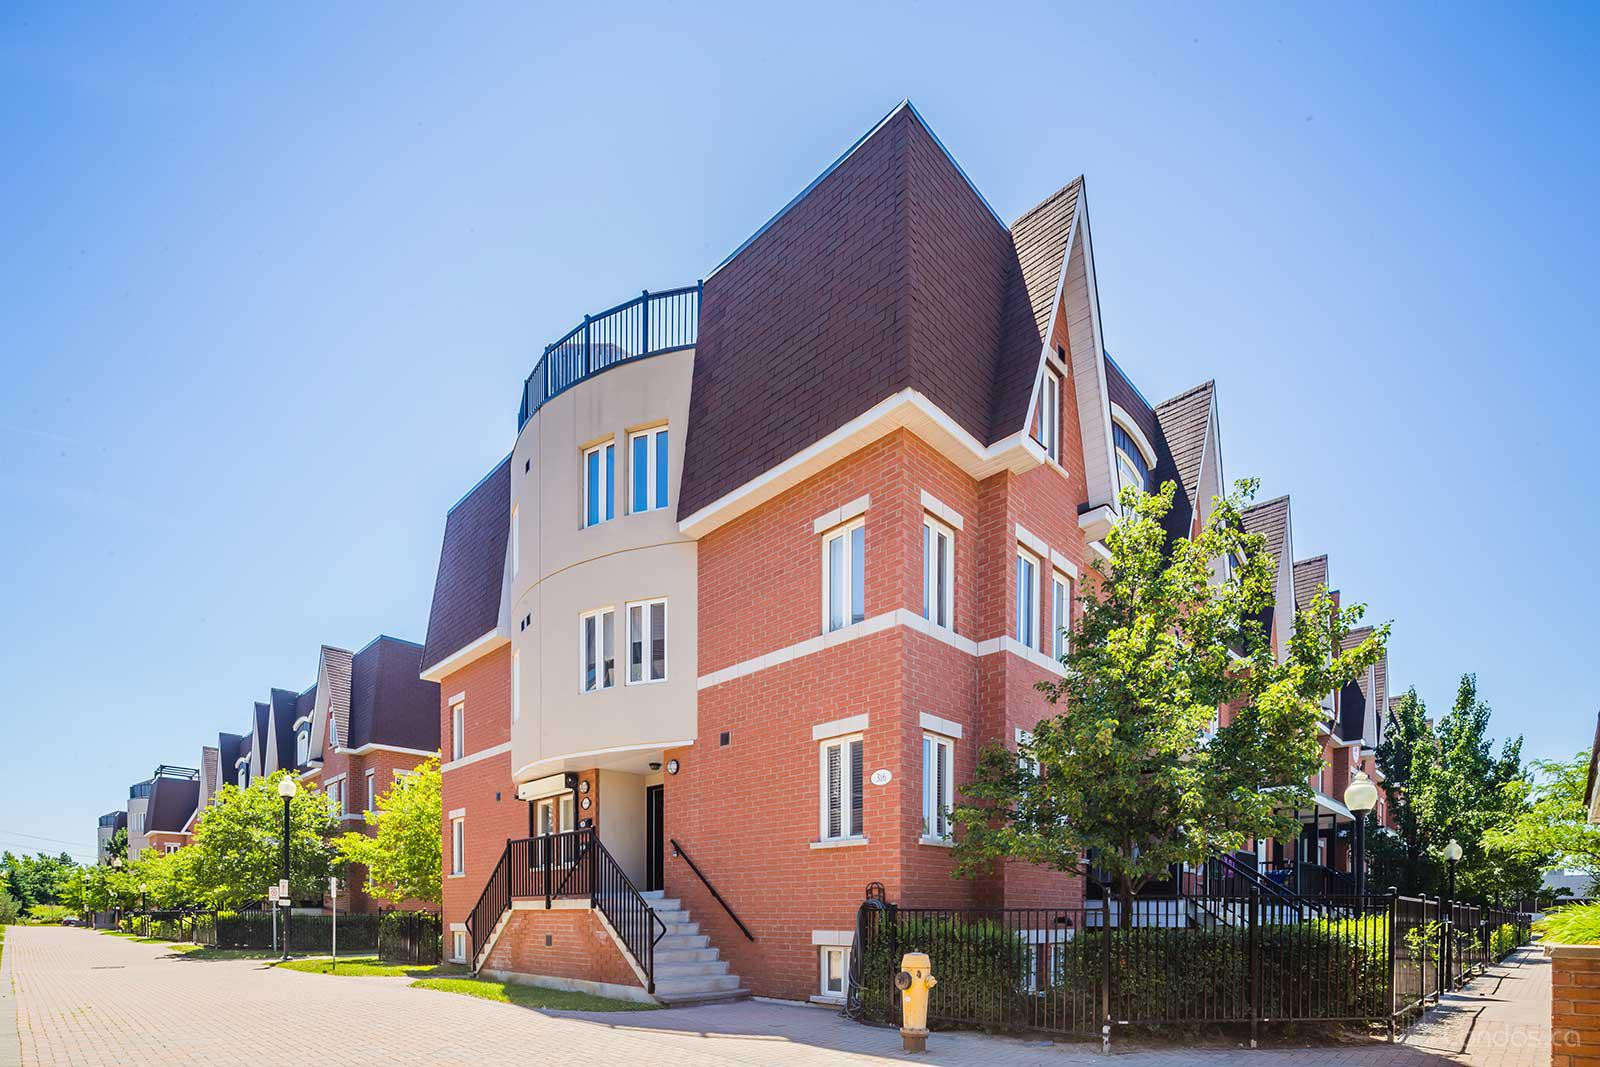 Townhomes of Thornhill Village at 306 John St, Markham 0